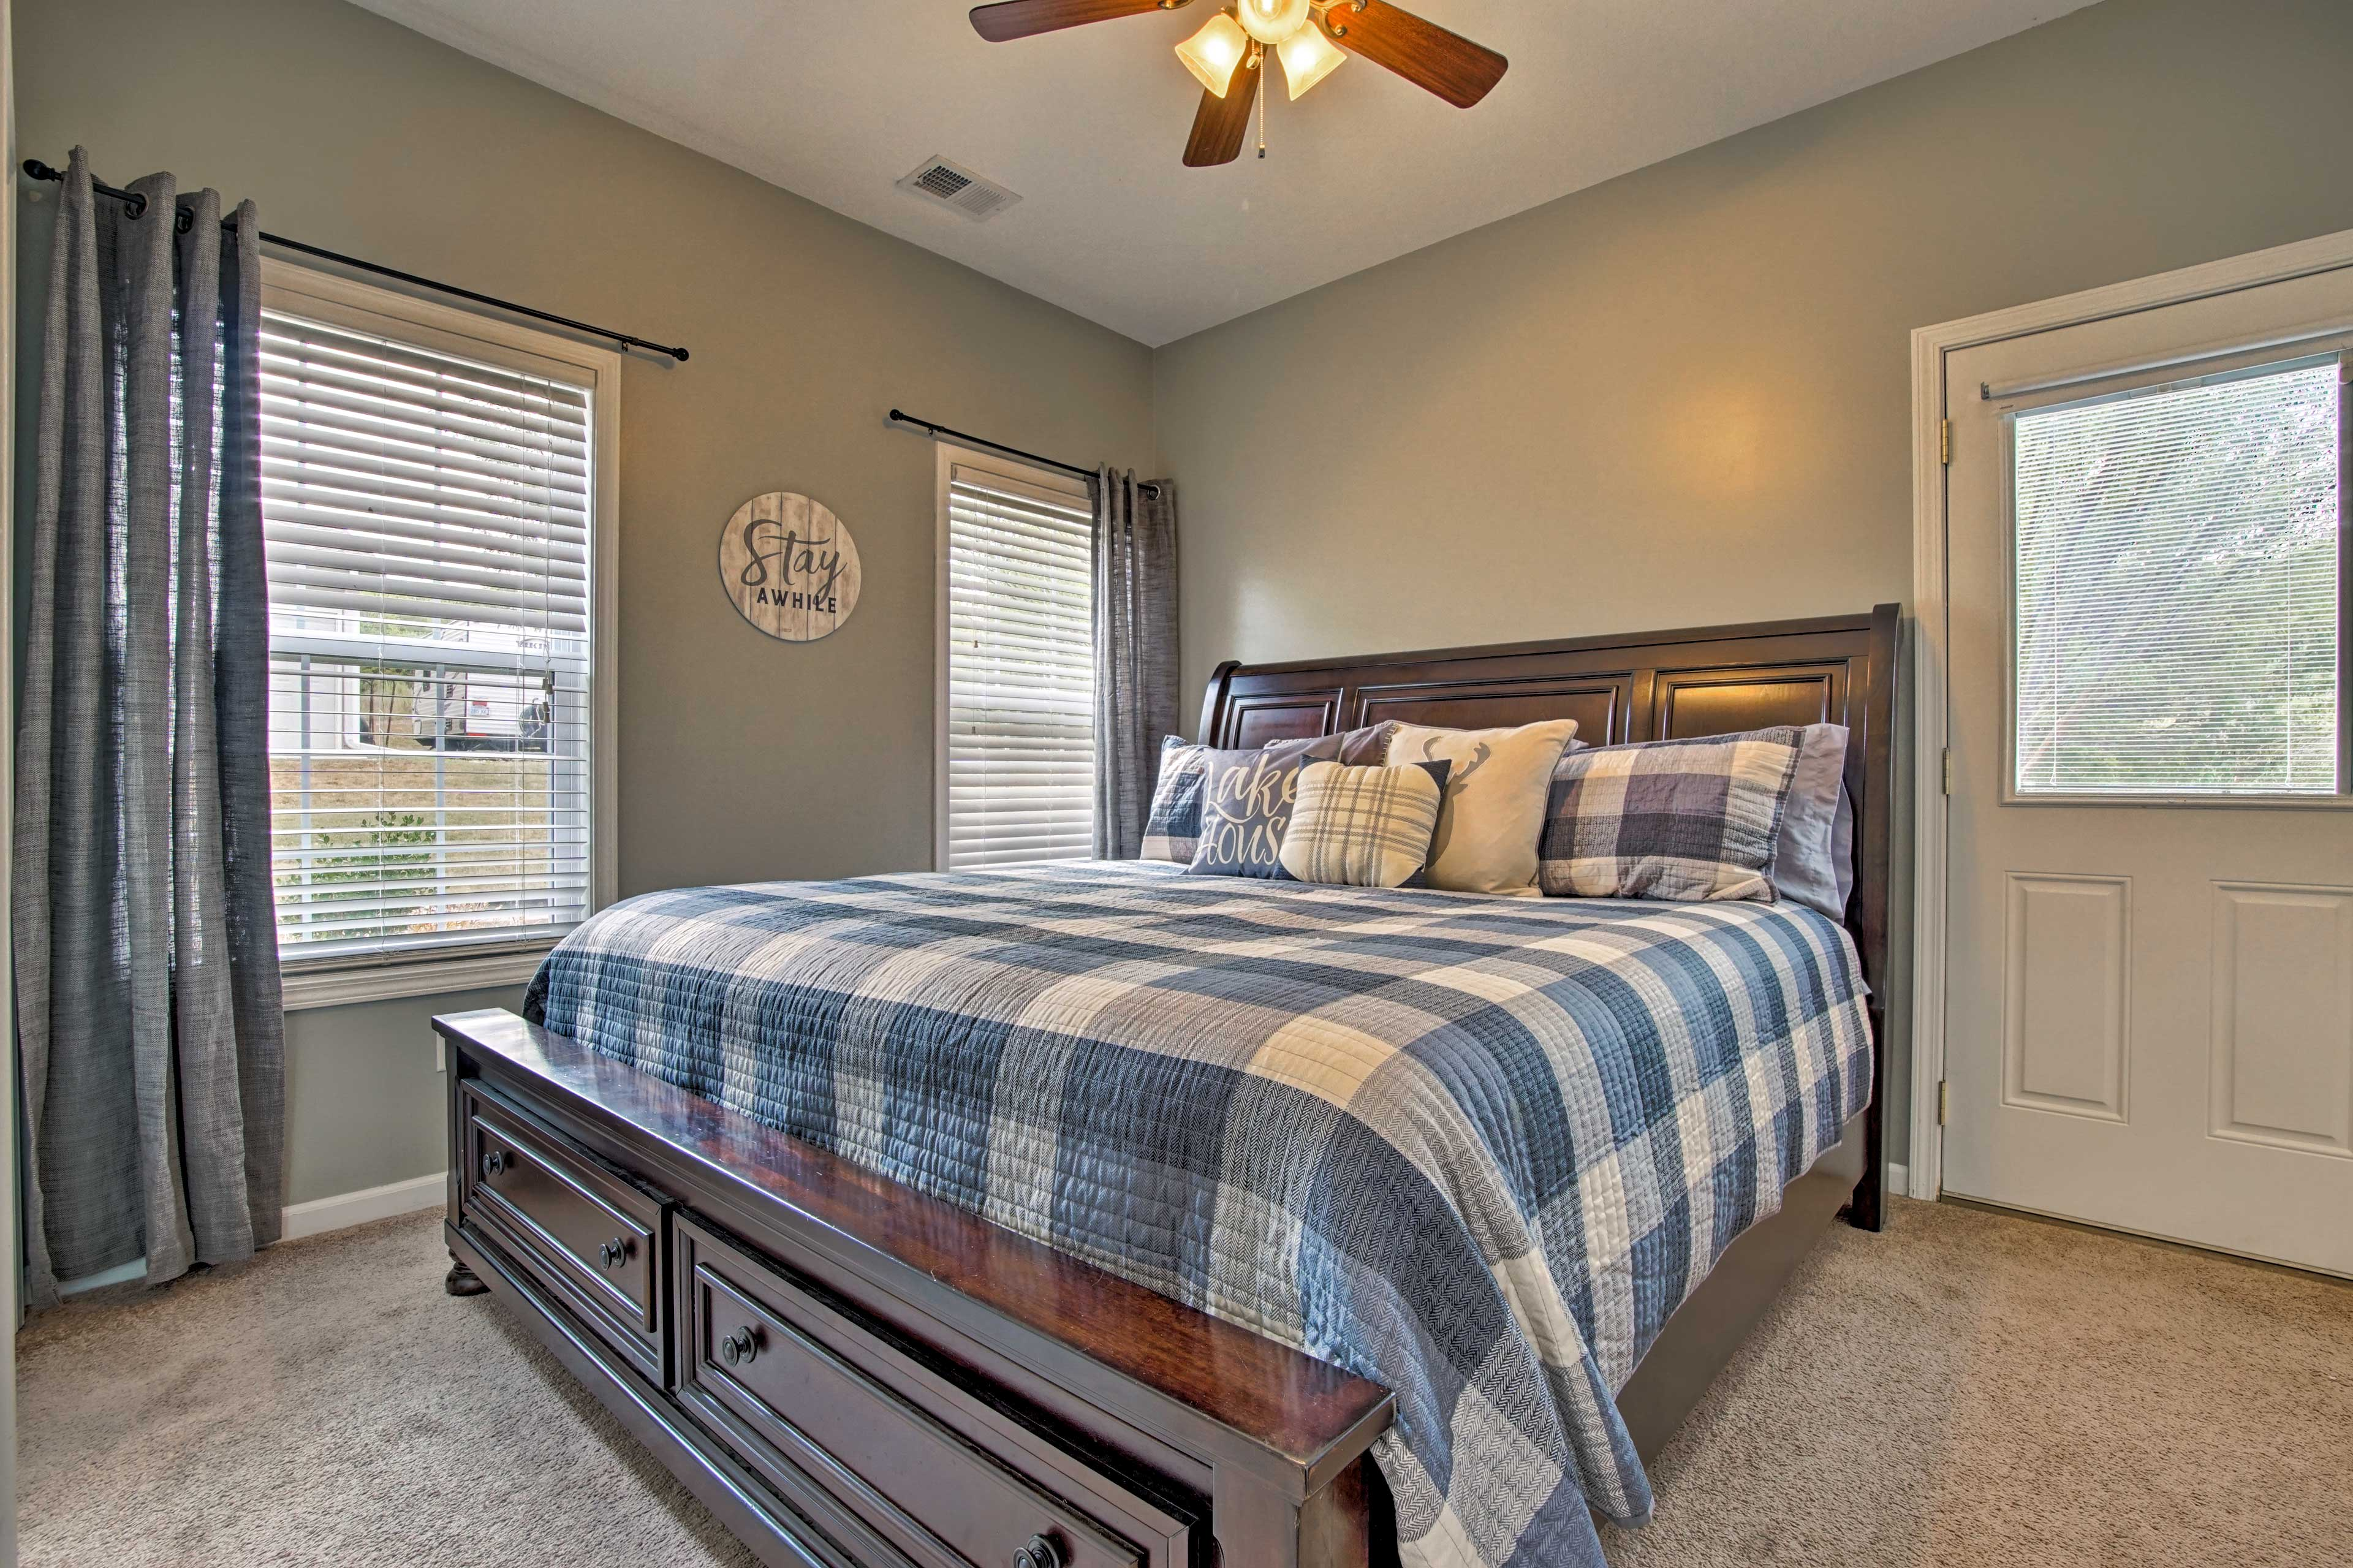 Wood furnishings fill this bedroom.